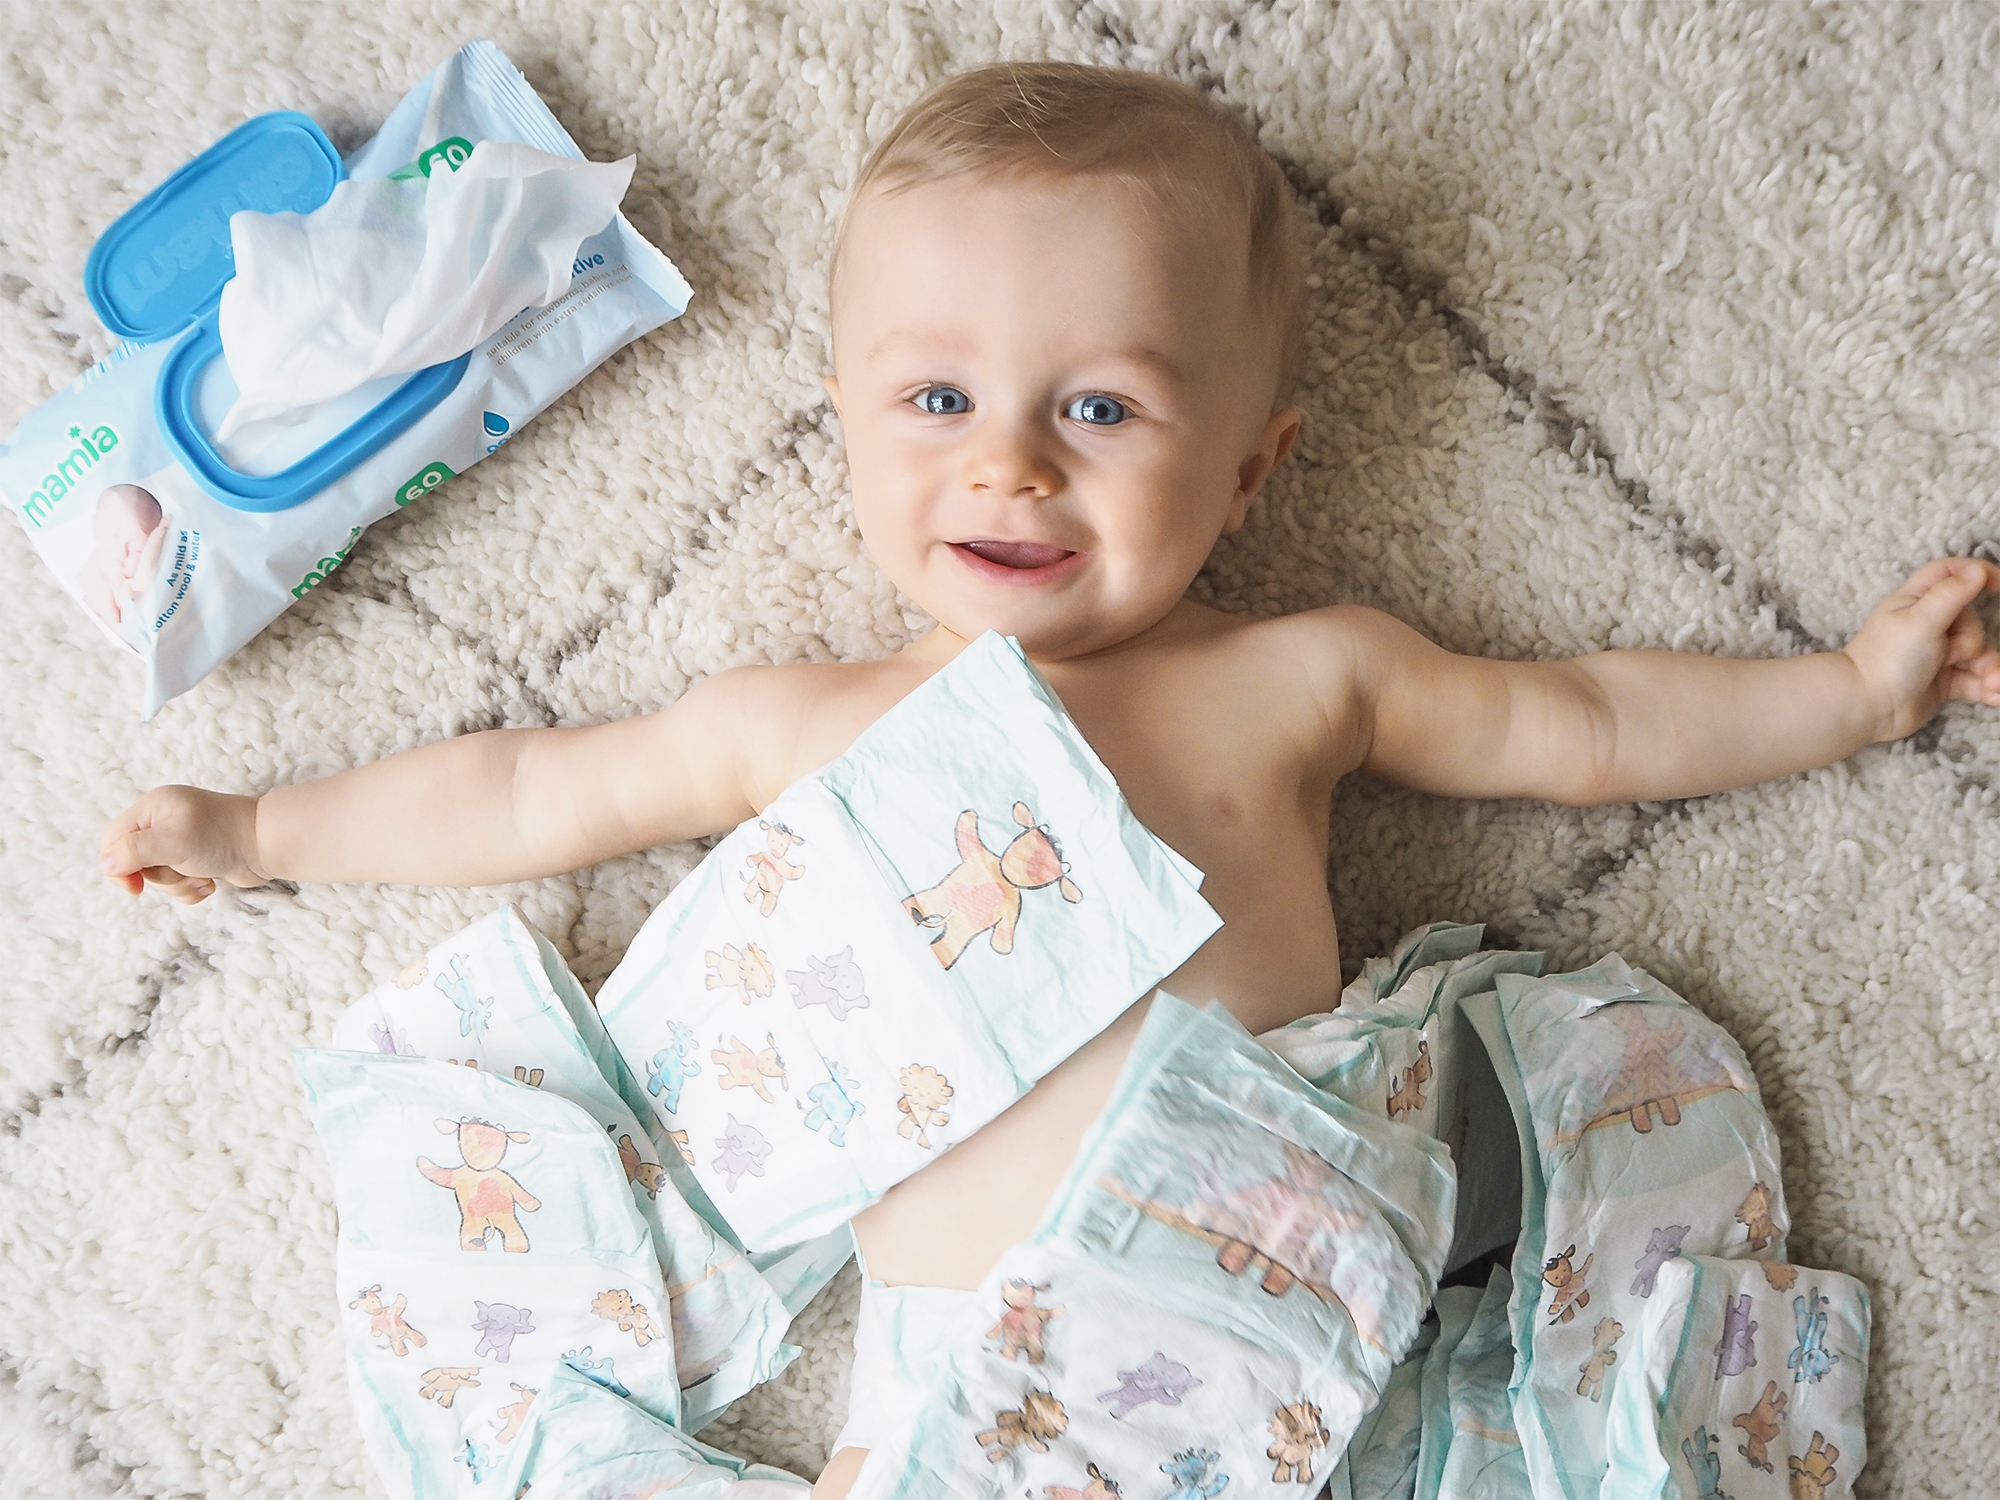 Aldi Mamia Nappies & Baby Wipes